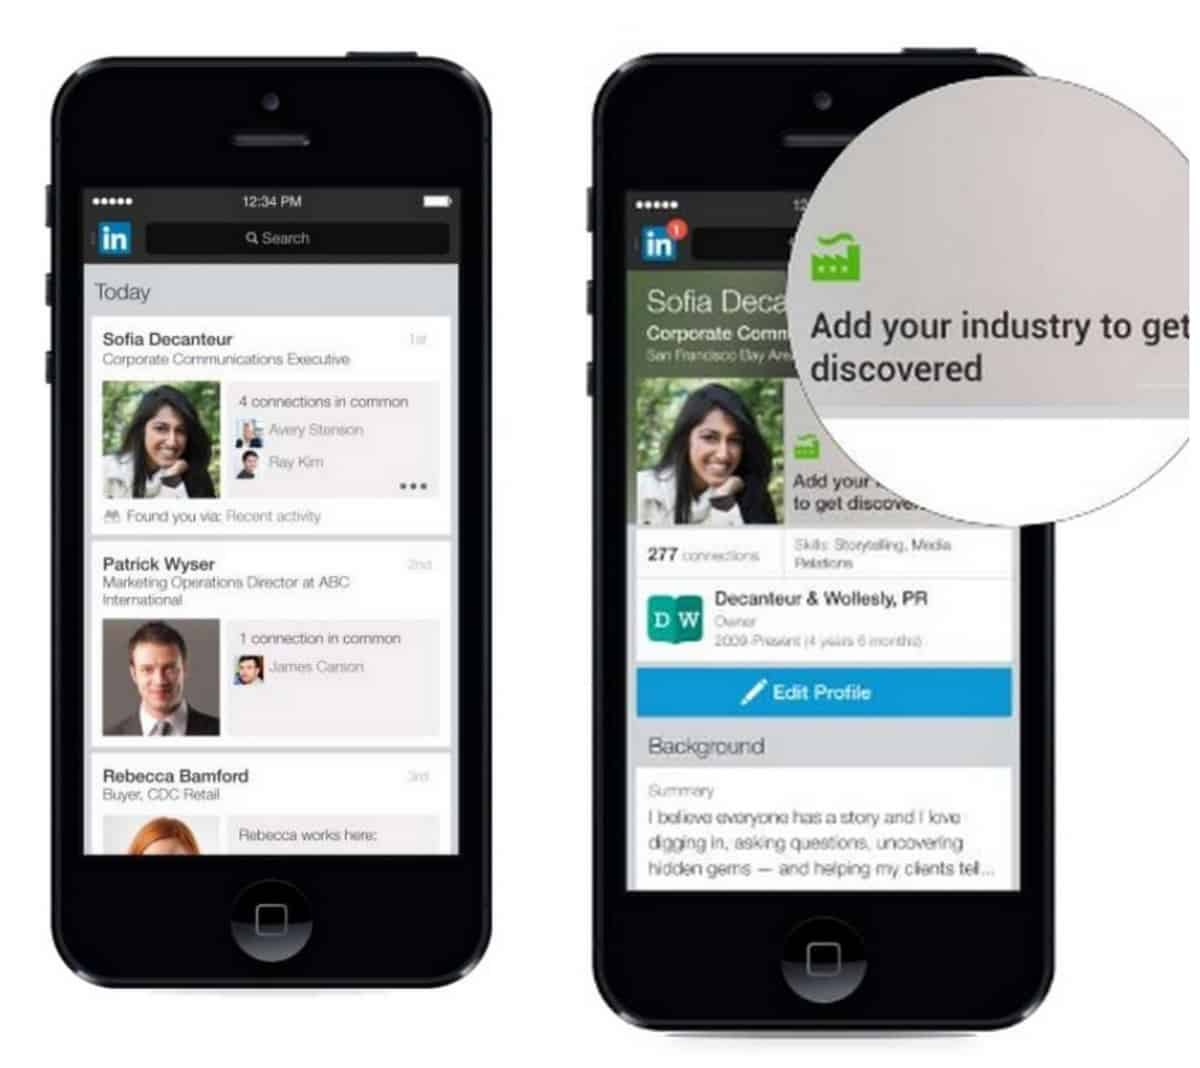 LinkedIn-Redesigns-Mobile-Profiles-to-Put-Relationships-Into-Context-2